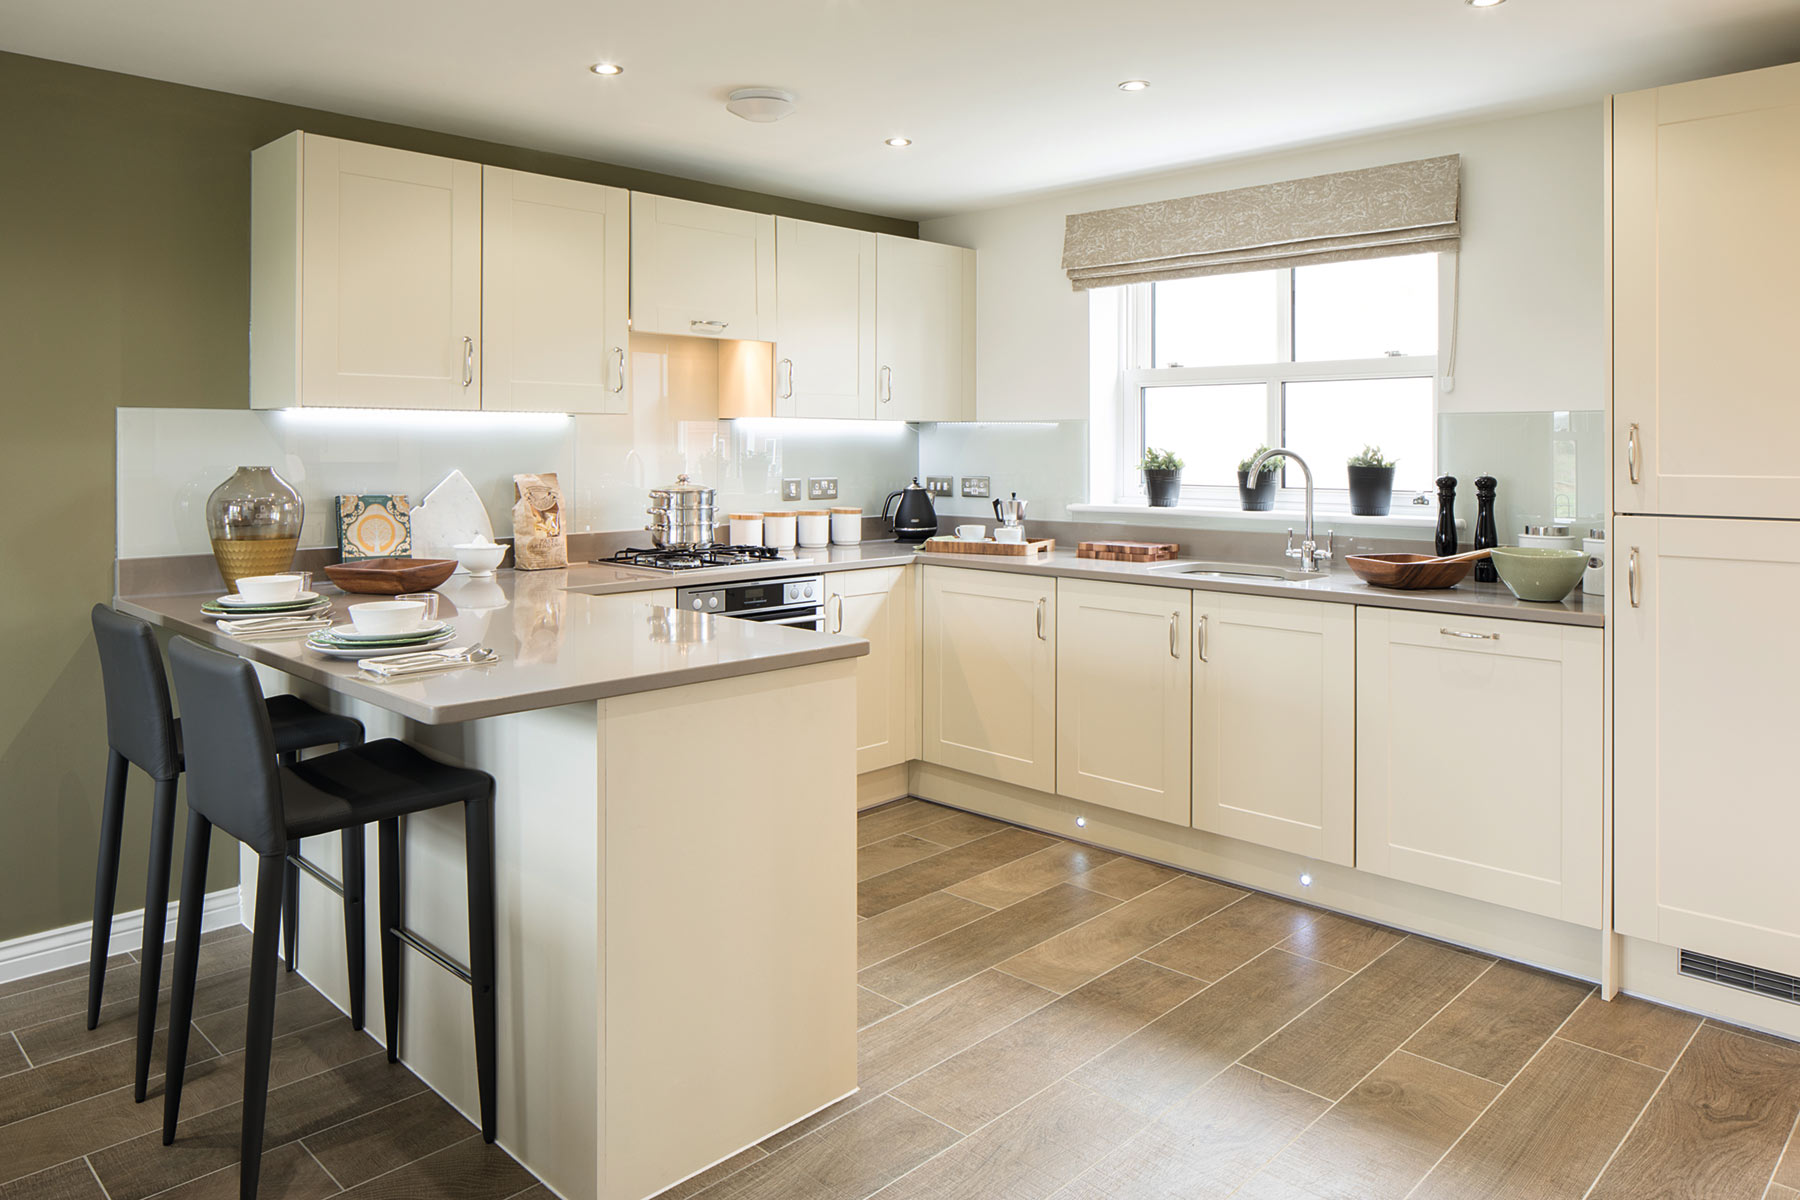 TW Exeter - Cranbrook - Eskdale example kitchen